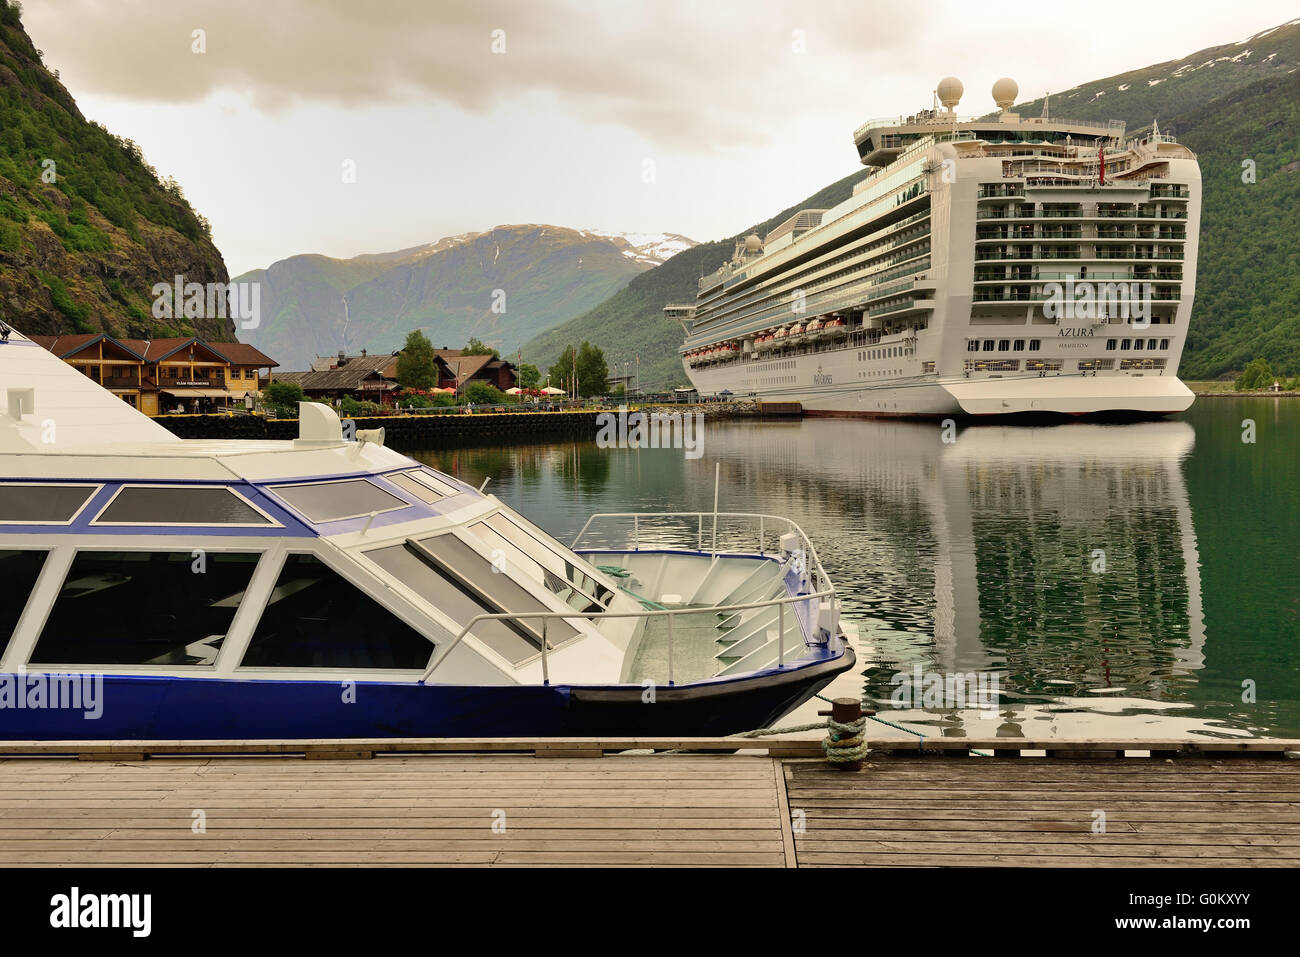 P&O cruise ship Azura berthed at Flam on the Aurlandsfjorden. - Stock Image